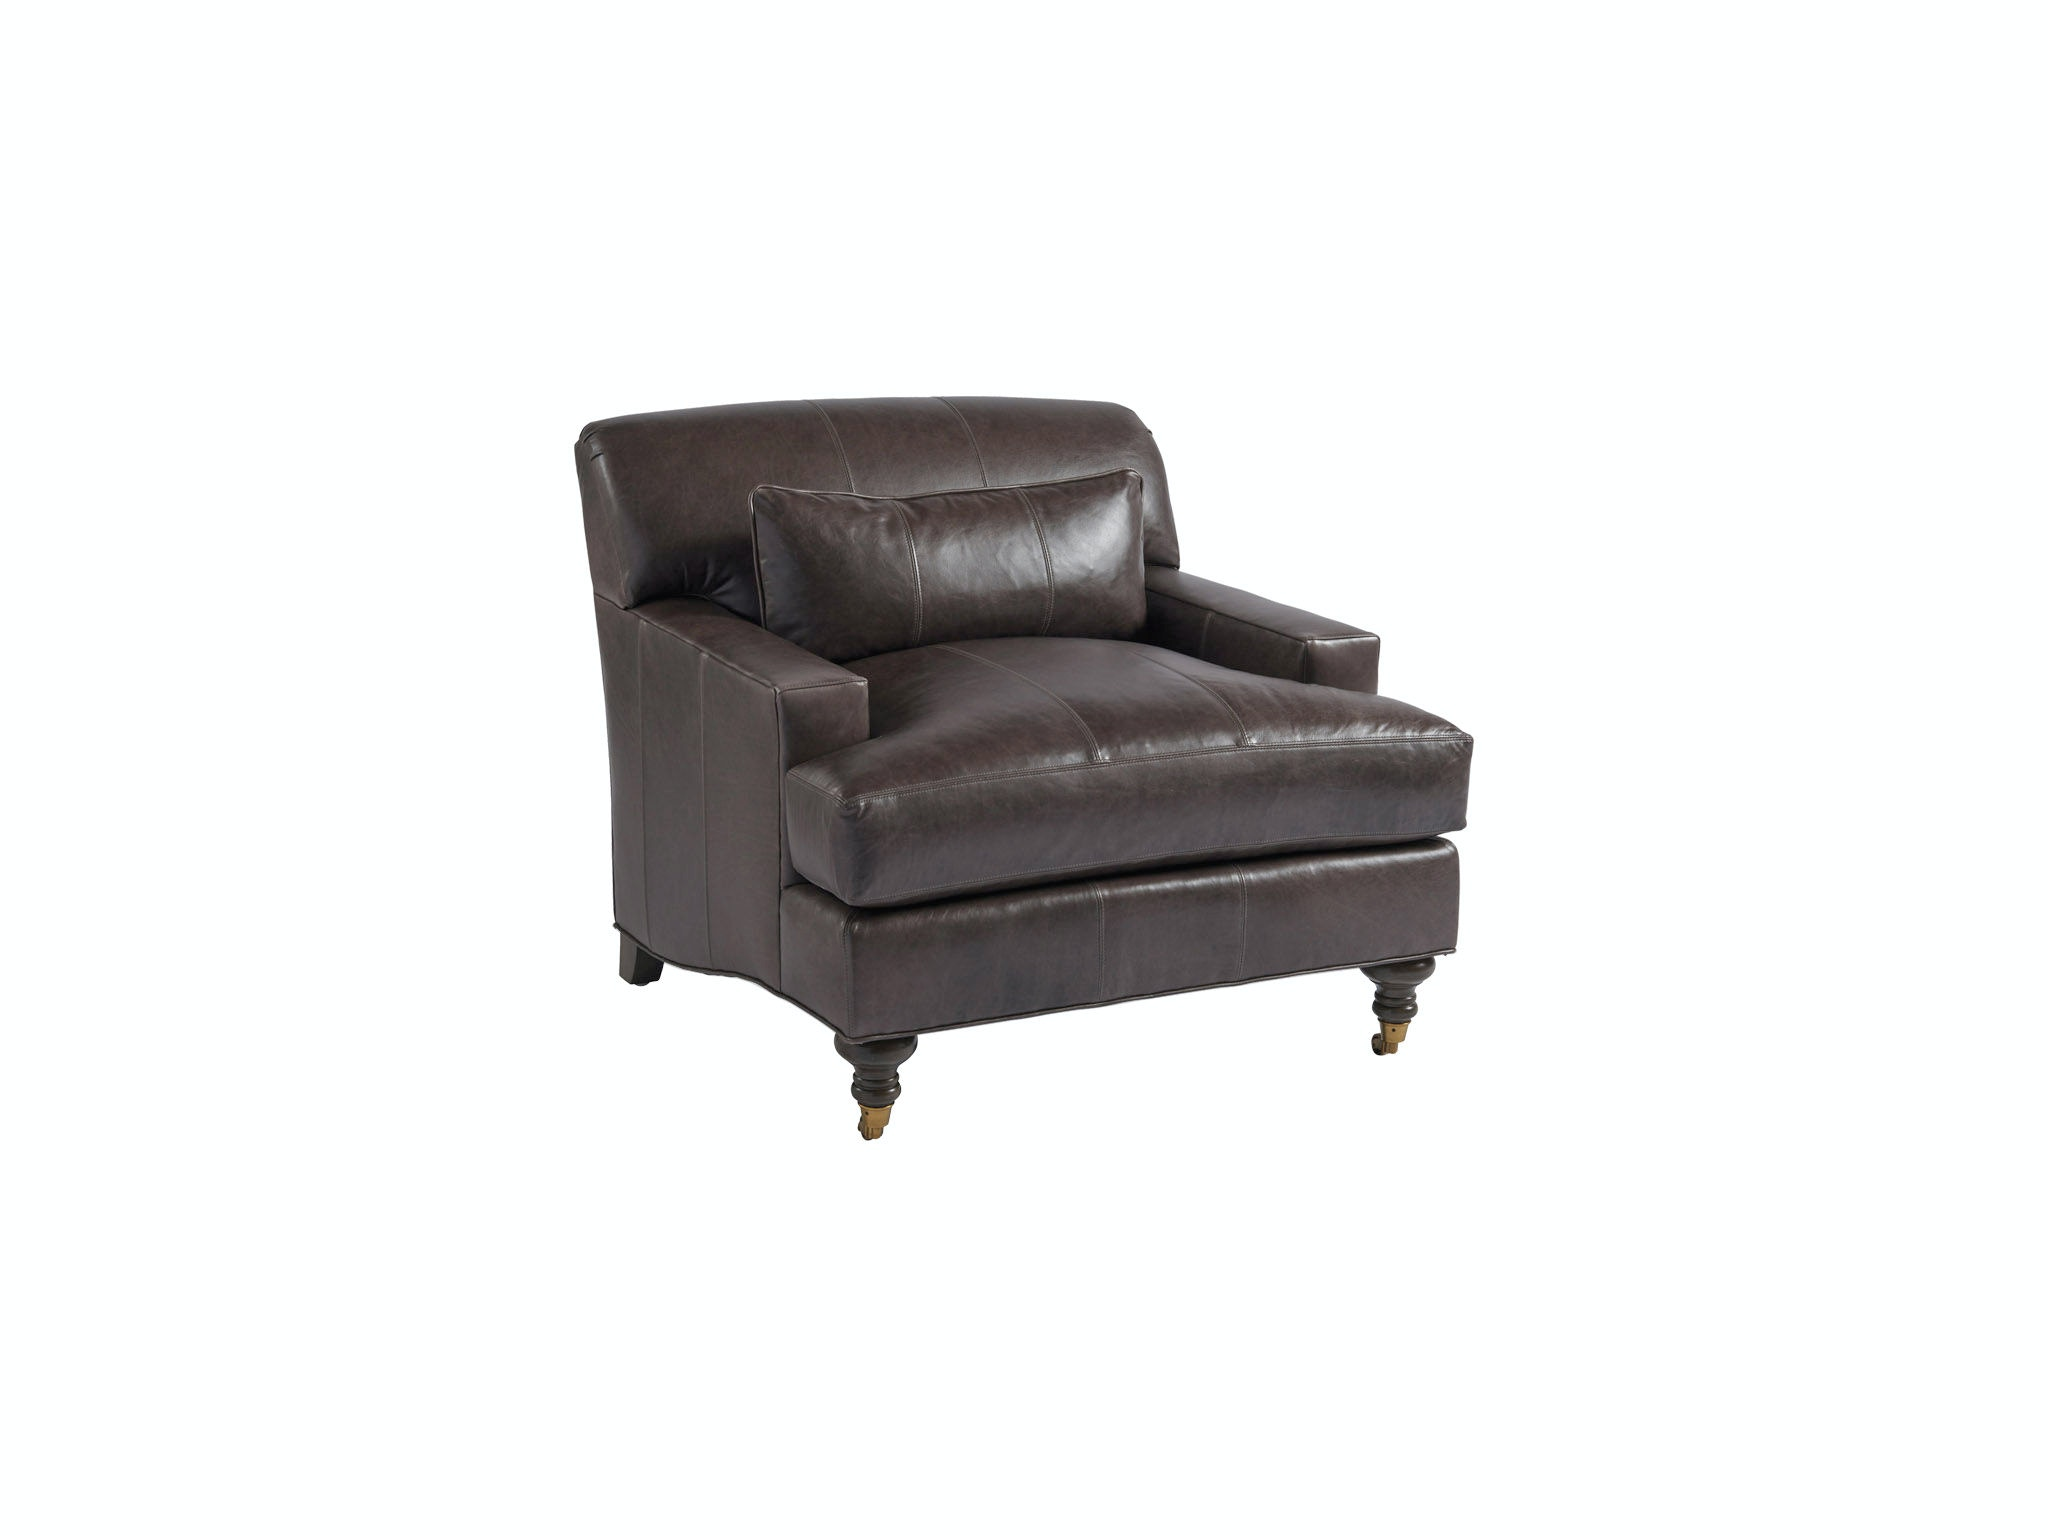 Barclay Butera By Lexington Oxford Leather Chair LL5160 11